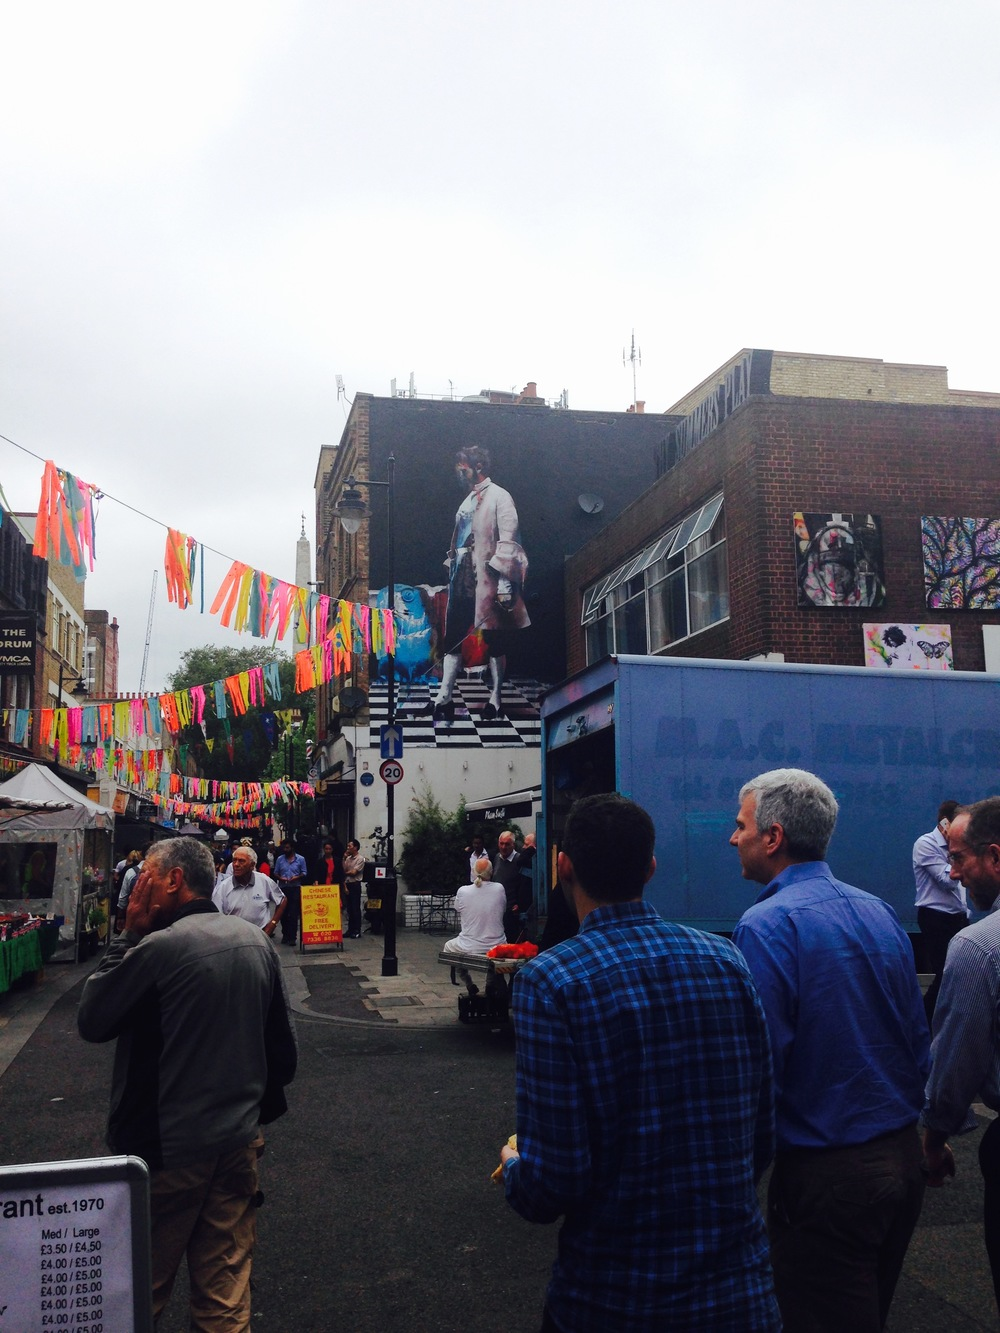 Whitecross Street Food Market